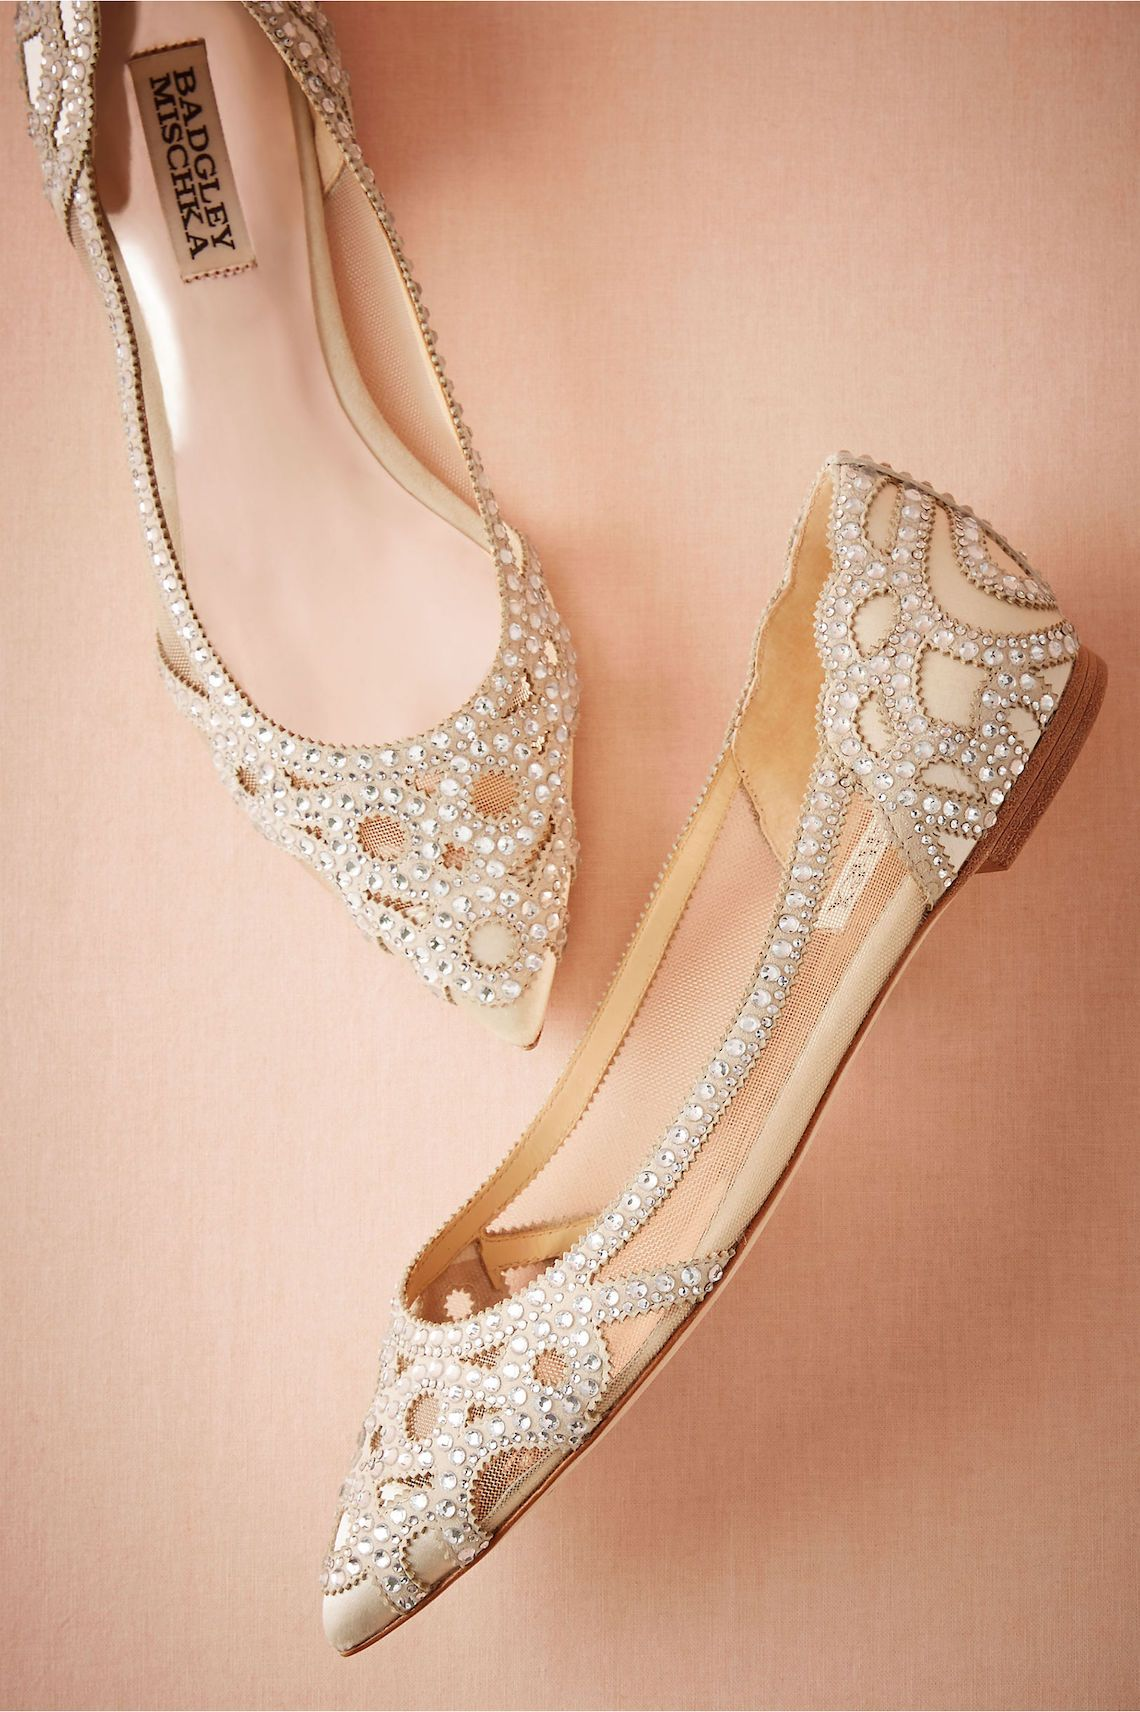 10 Flat Wedding Shoes (That Are Just As Chic As Heels)  f577cf116a73